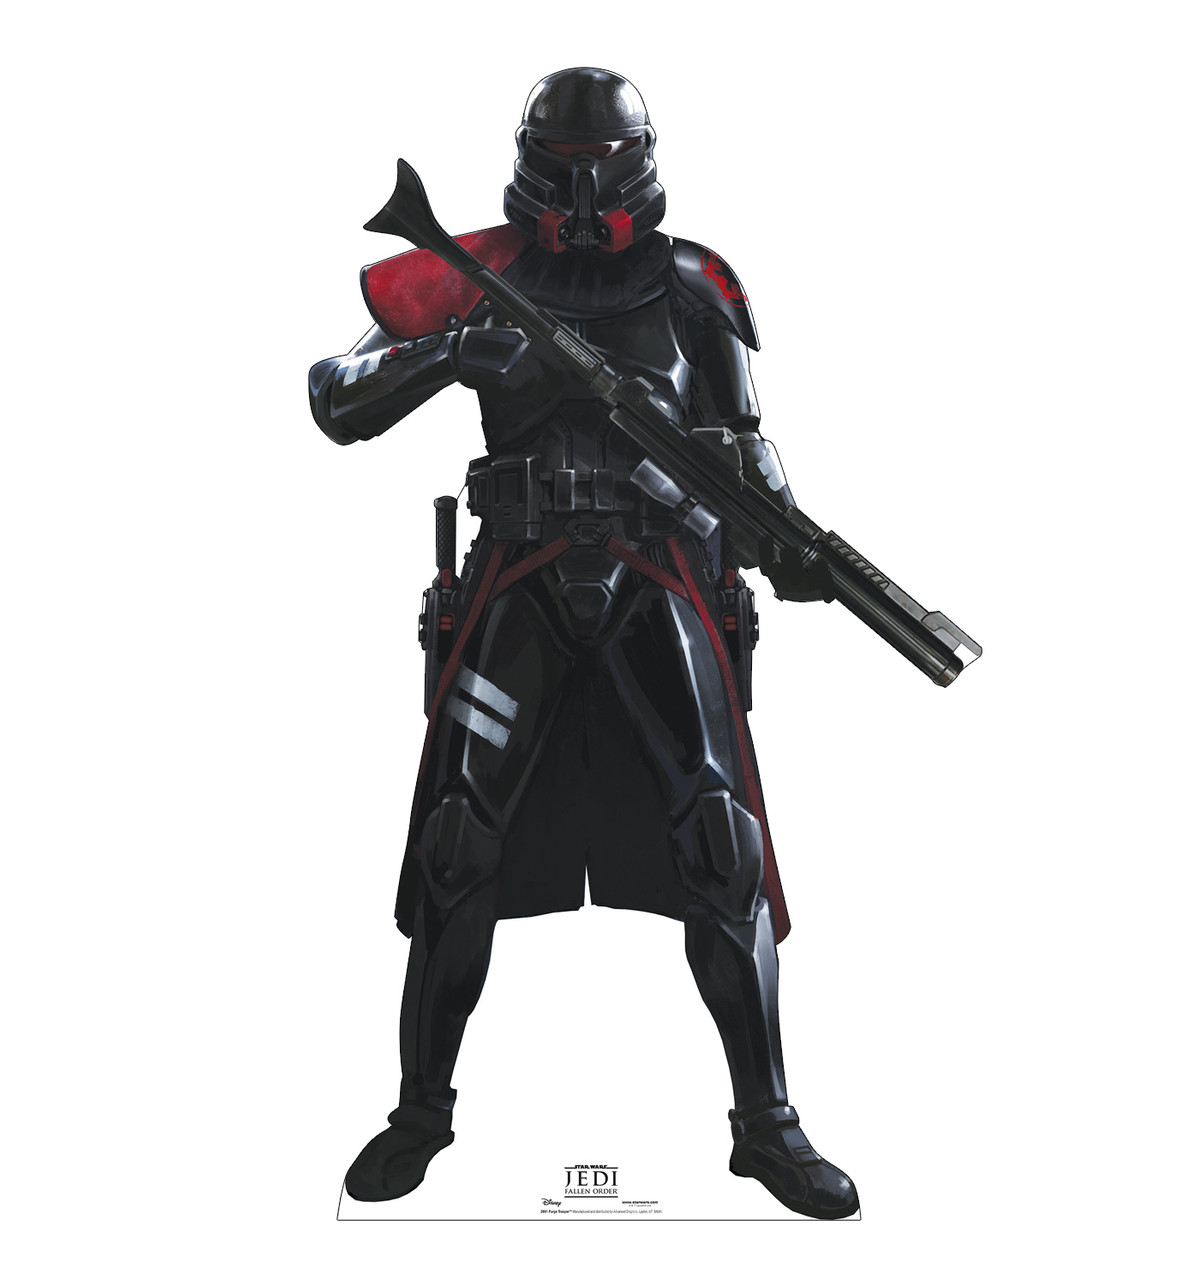 Life-size cardboard standee of Purge Trooper from Jedi Fallen Order.